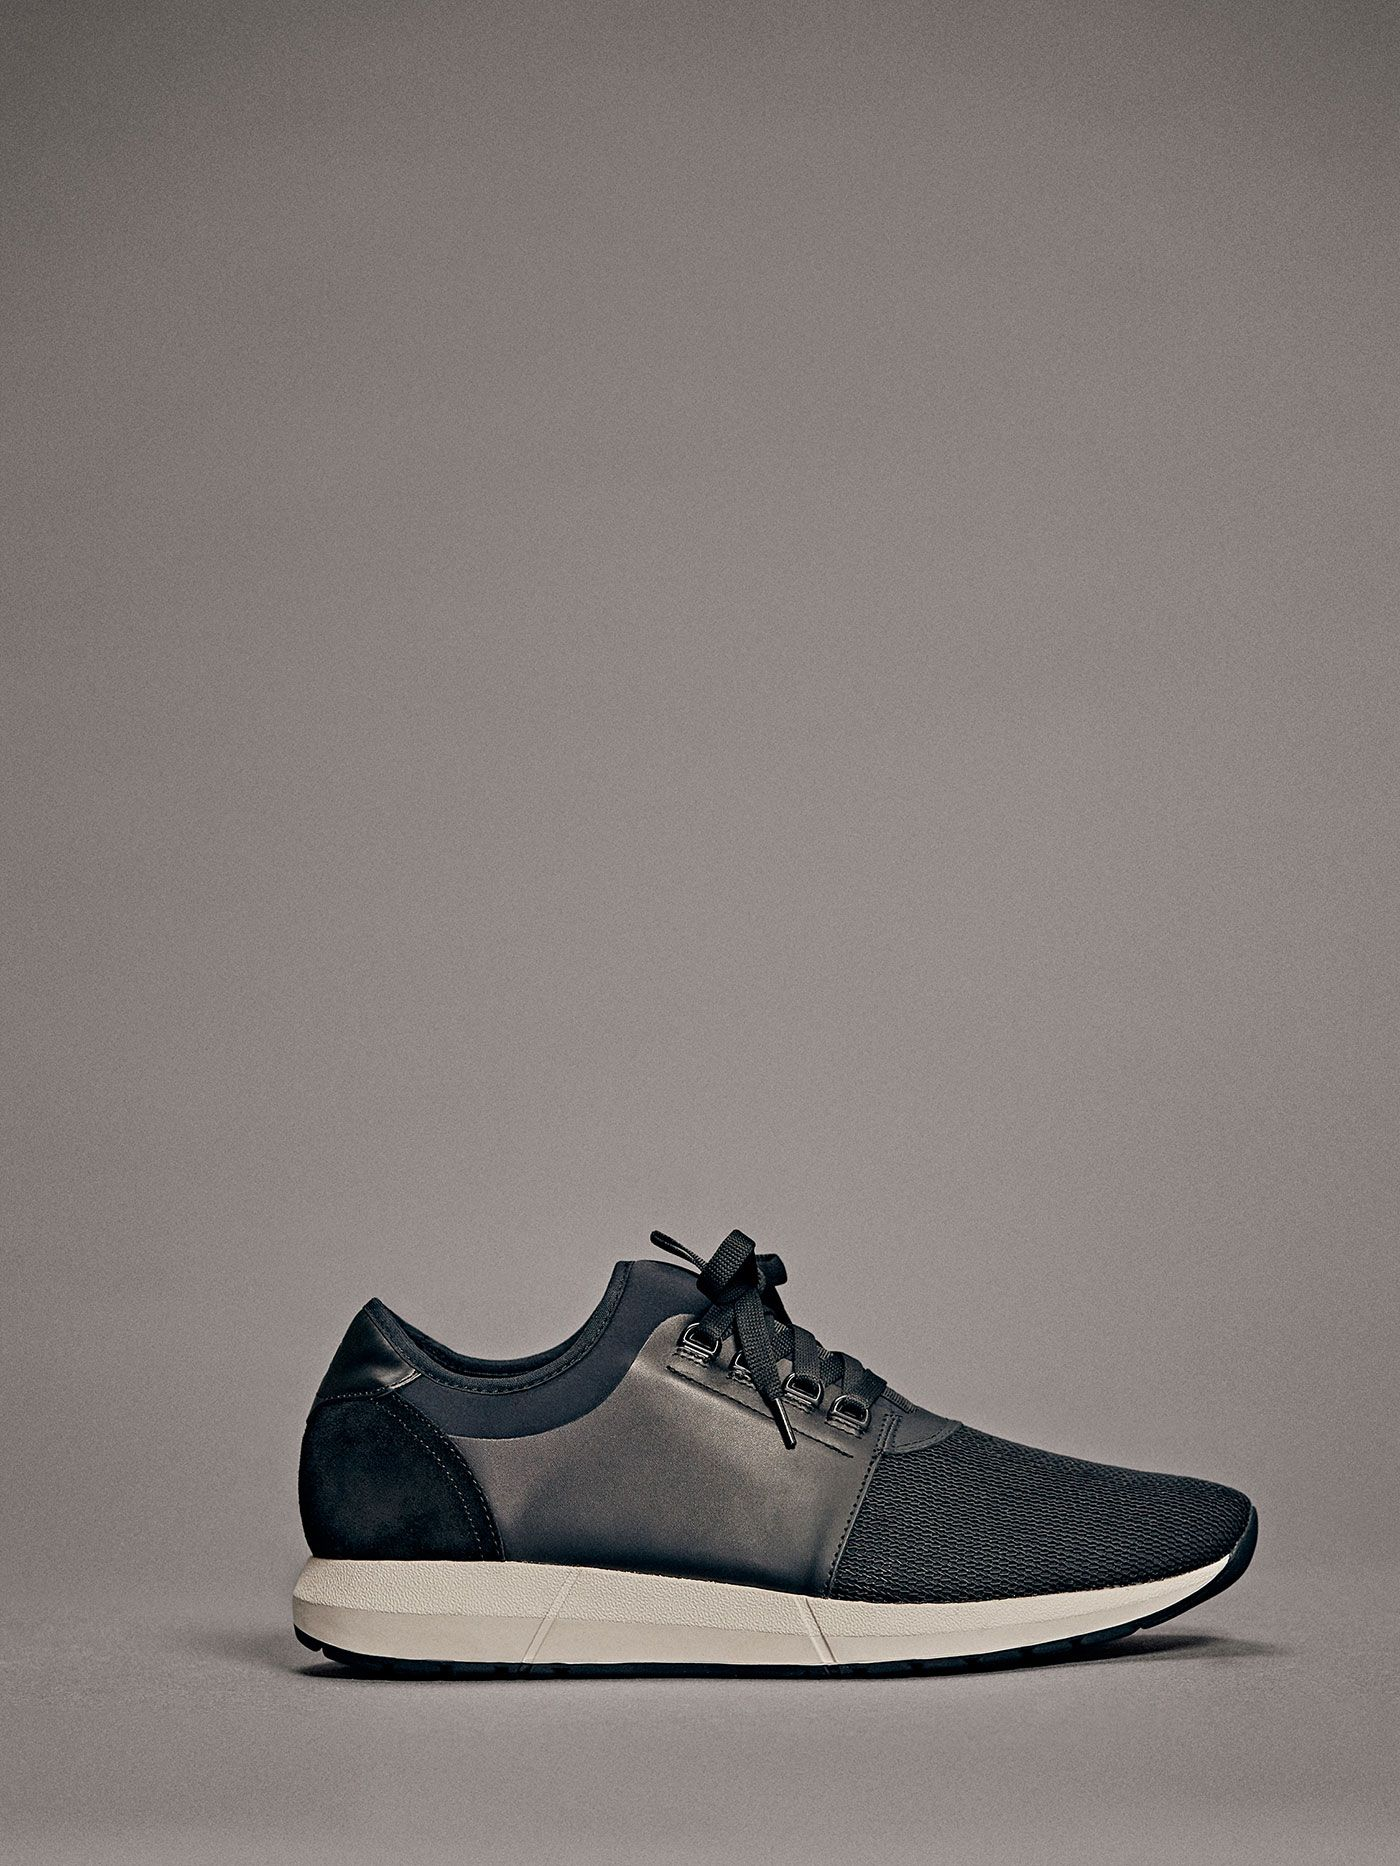 View all - Shoes - MEN - Massimo Dutti